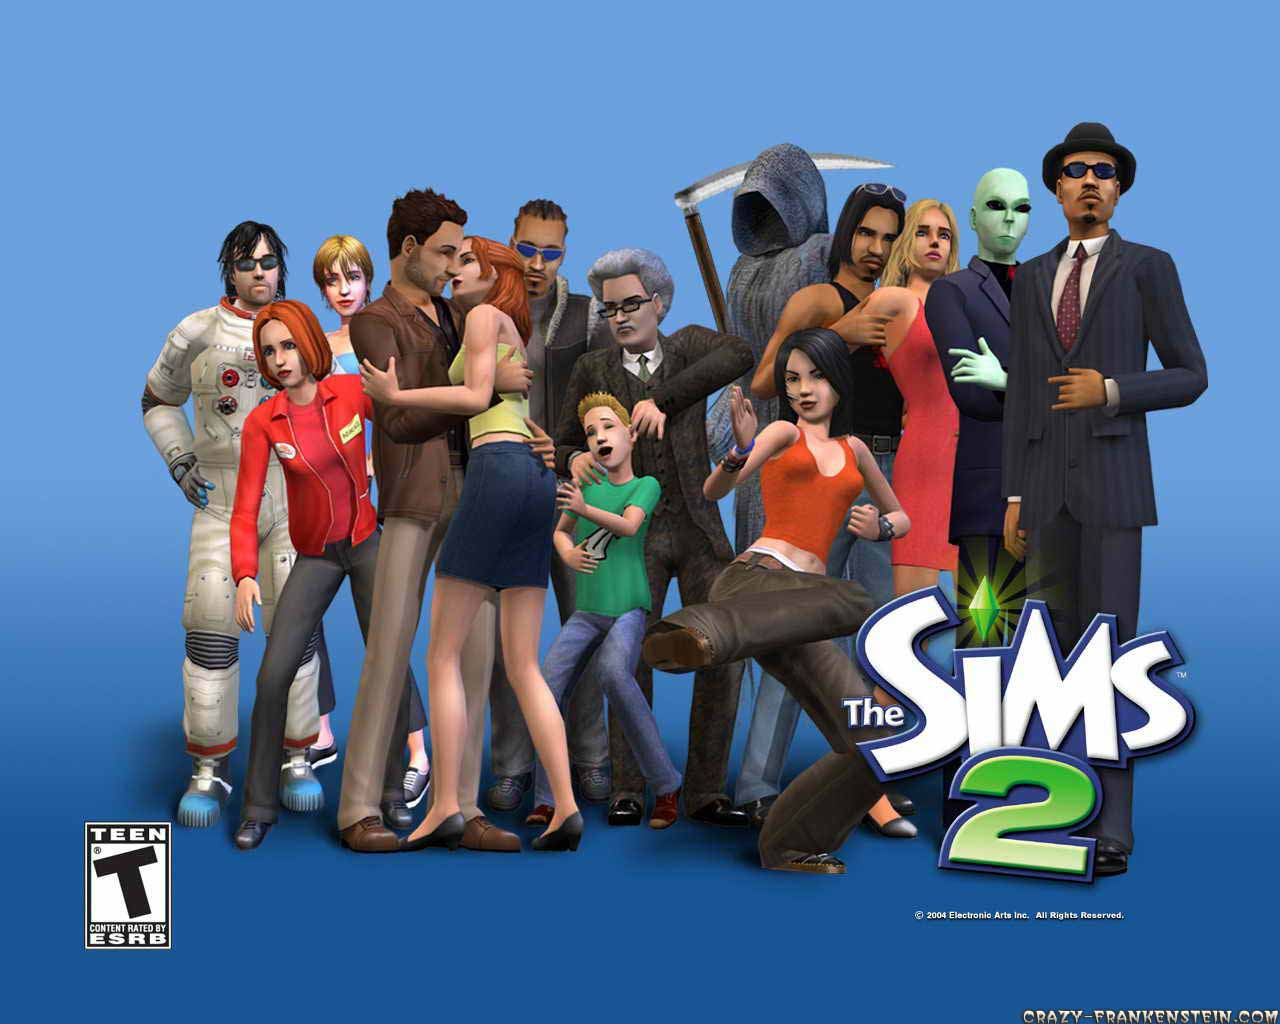 Wallpaper: The Sims 2 - Games wallpaper. Resolution: 1024x768. Size: 117 KB